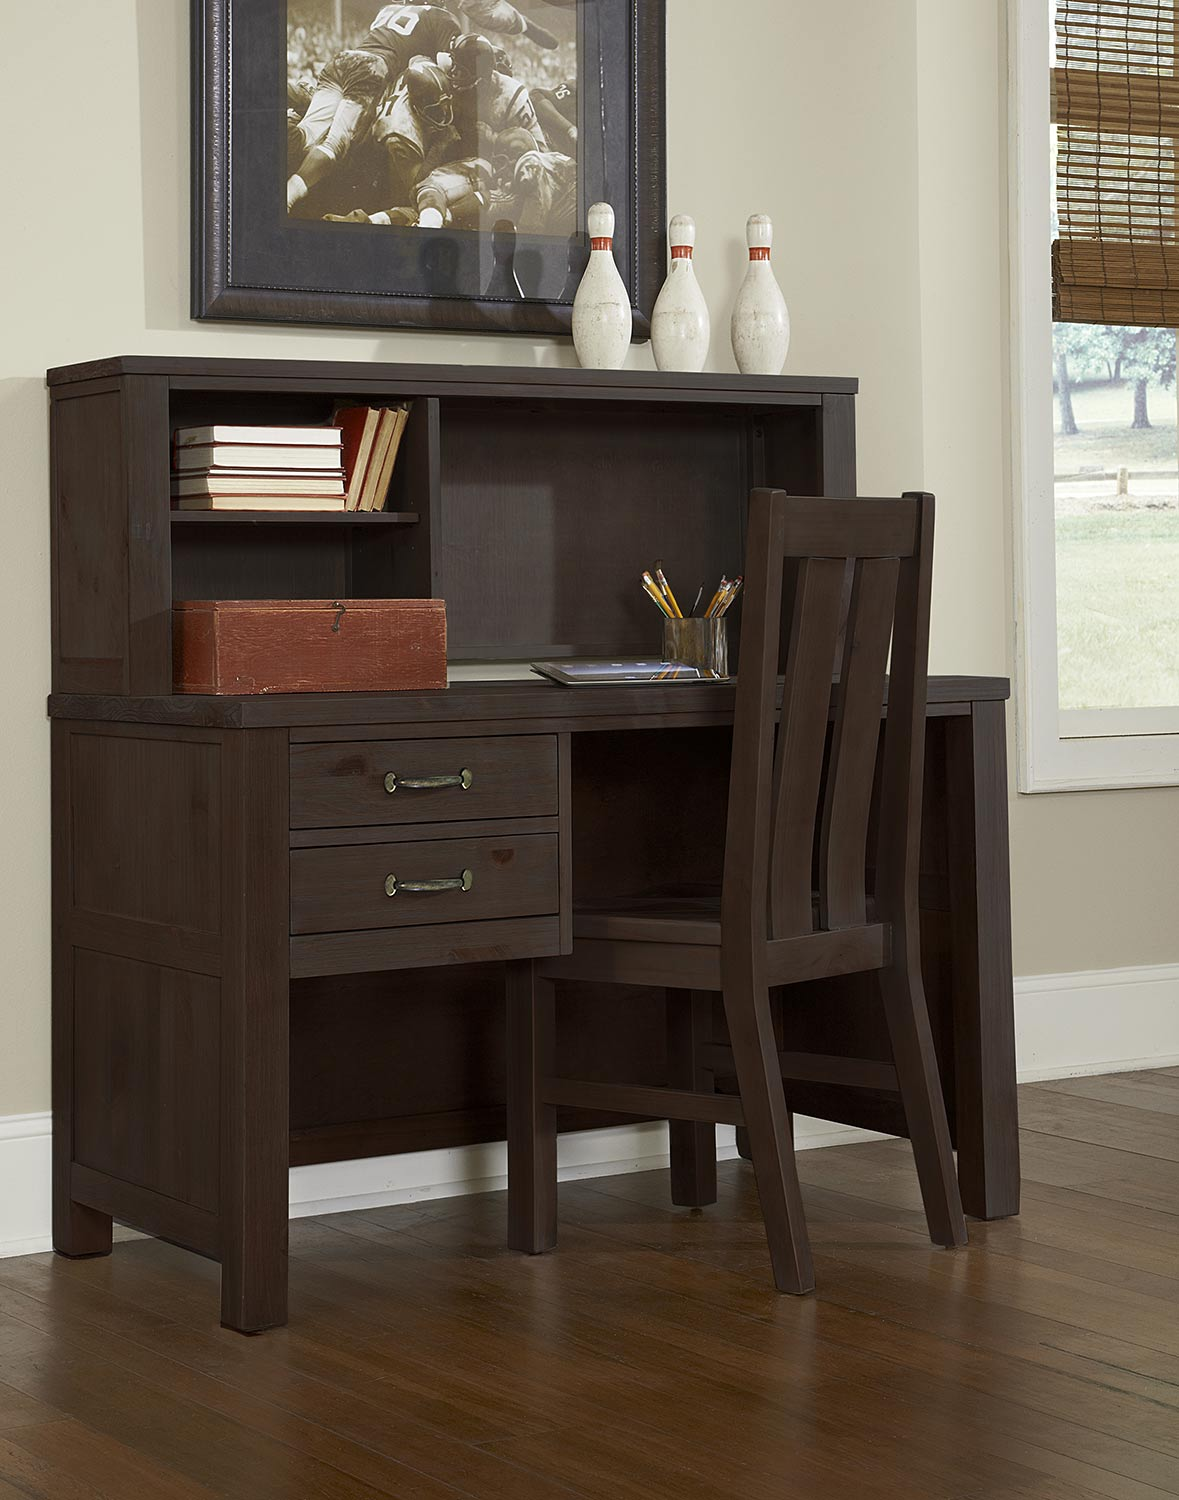 NE Kids Highlands Desk with Hutch And Chair - Espresso